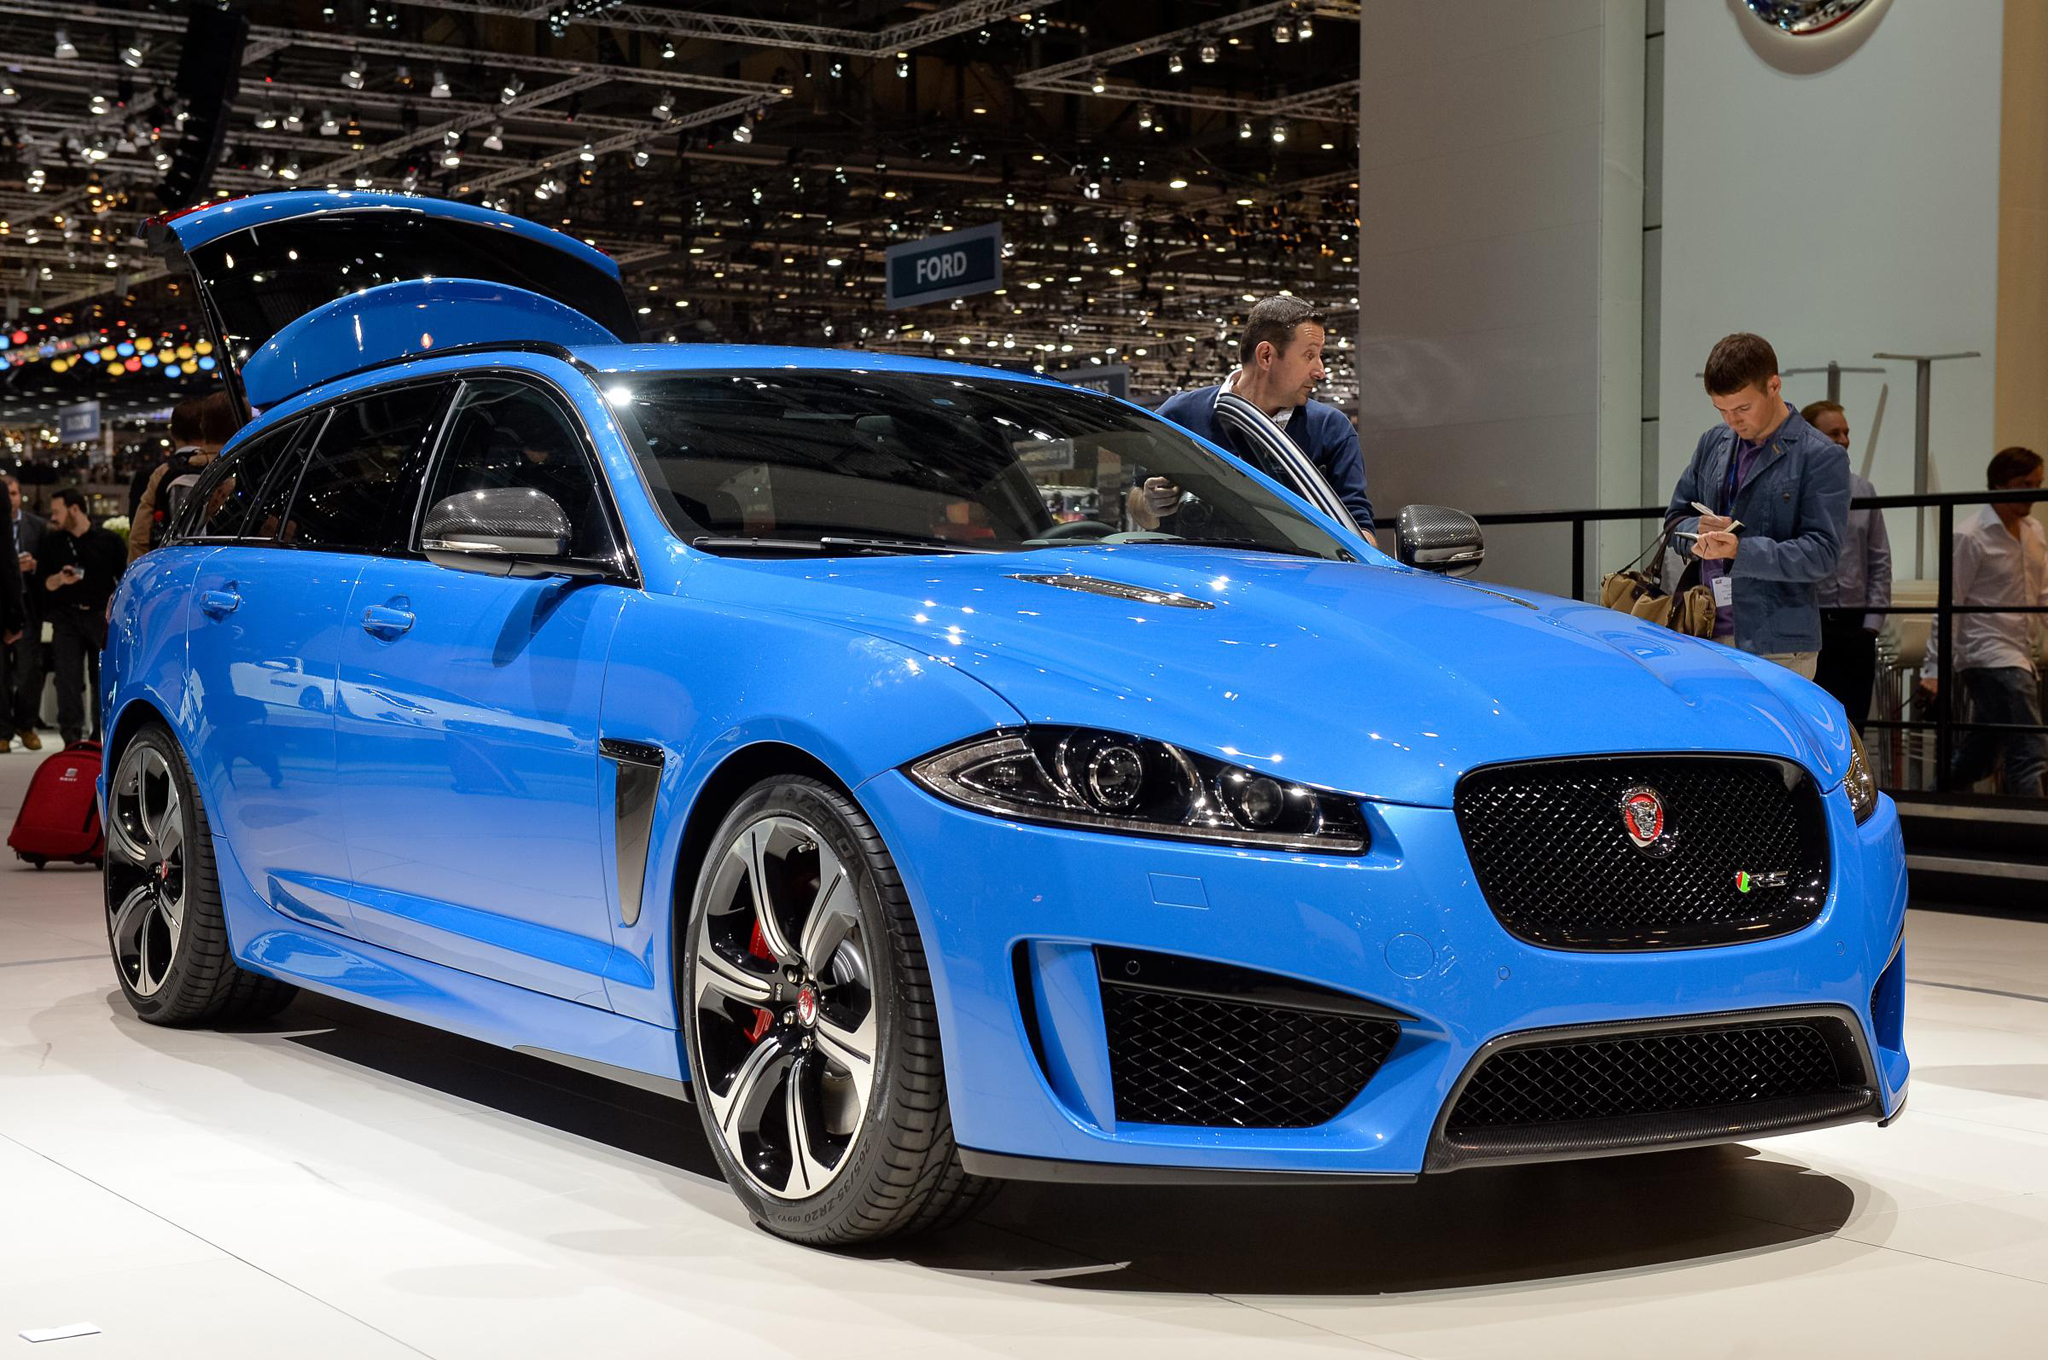 Hottest Luxury Cars From the 2014 Geneva Motor Show